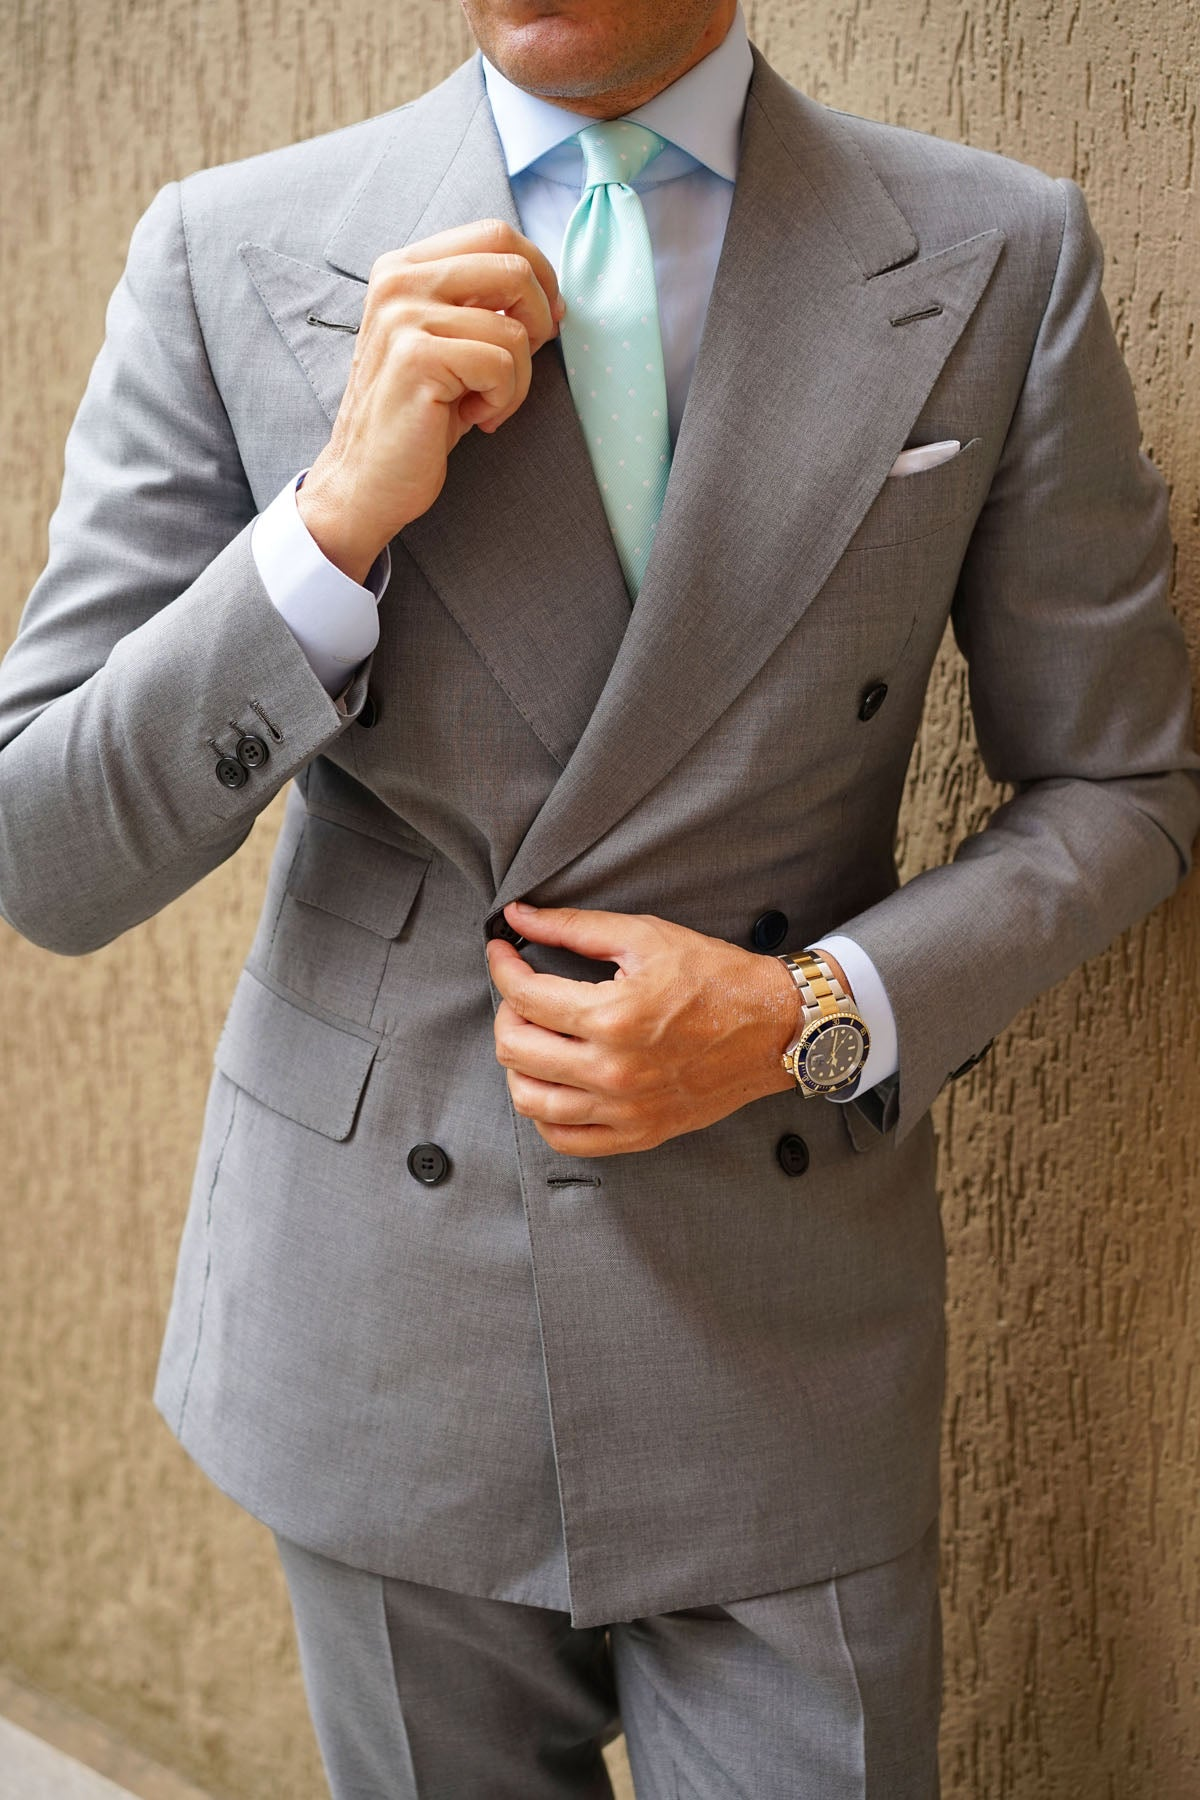 Mint Green with White Polka Dots Skinny Tie